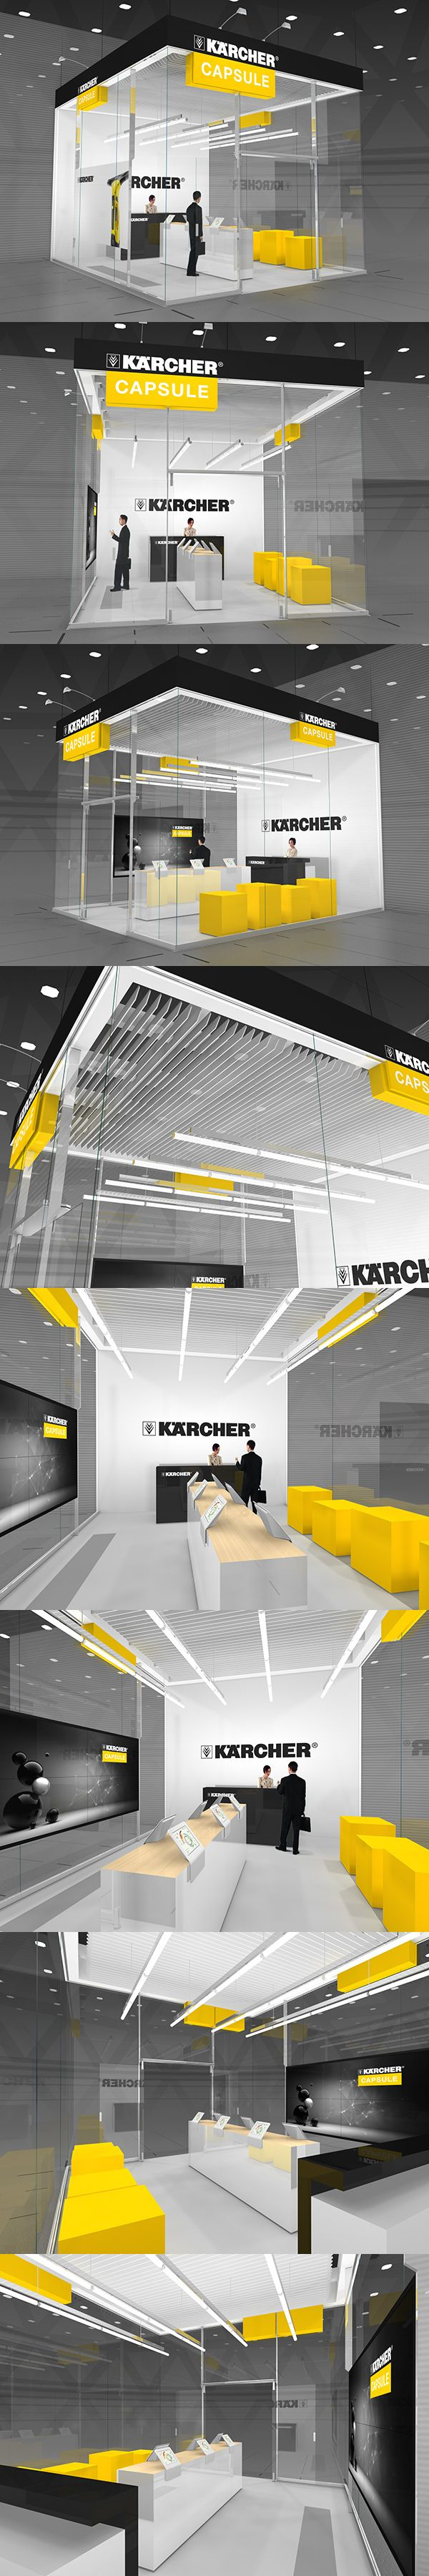 Karcher trade space on Behance